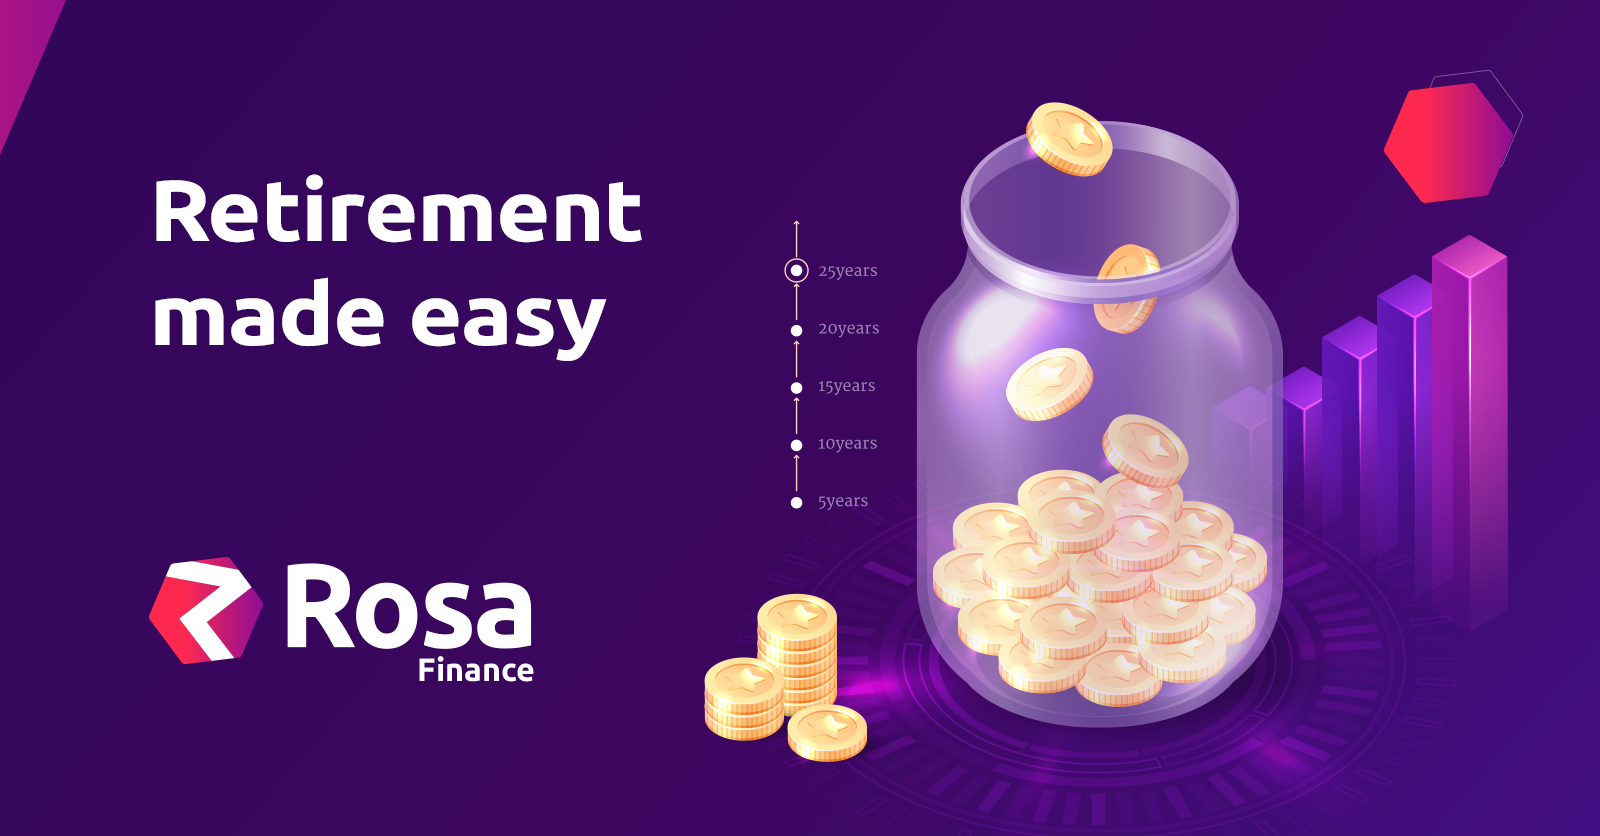 ROSA: A decentralized finance ecosystem poised to change the pension industry for the better